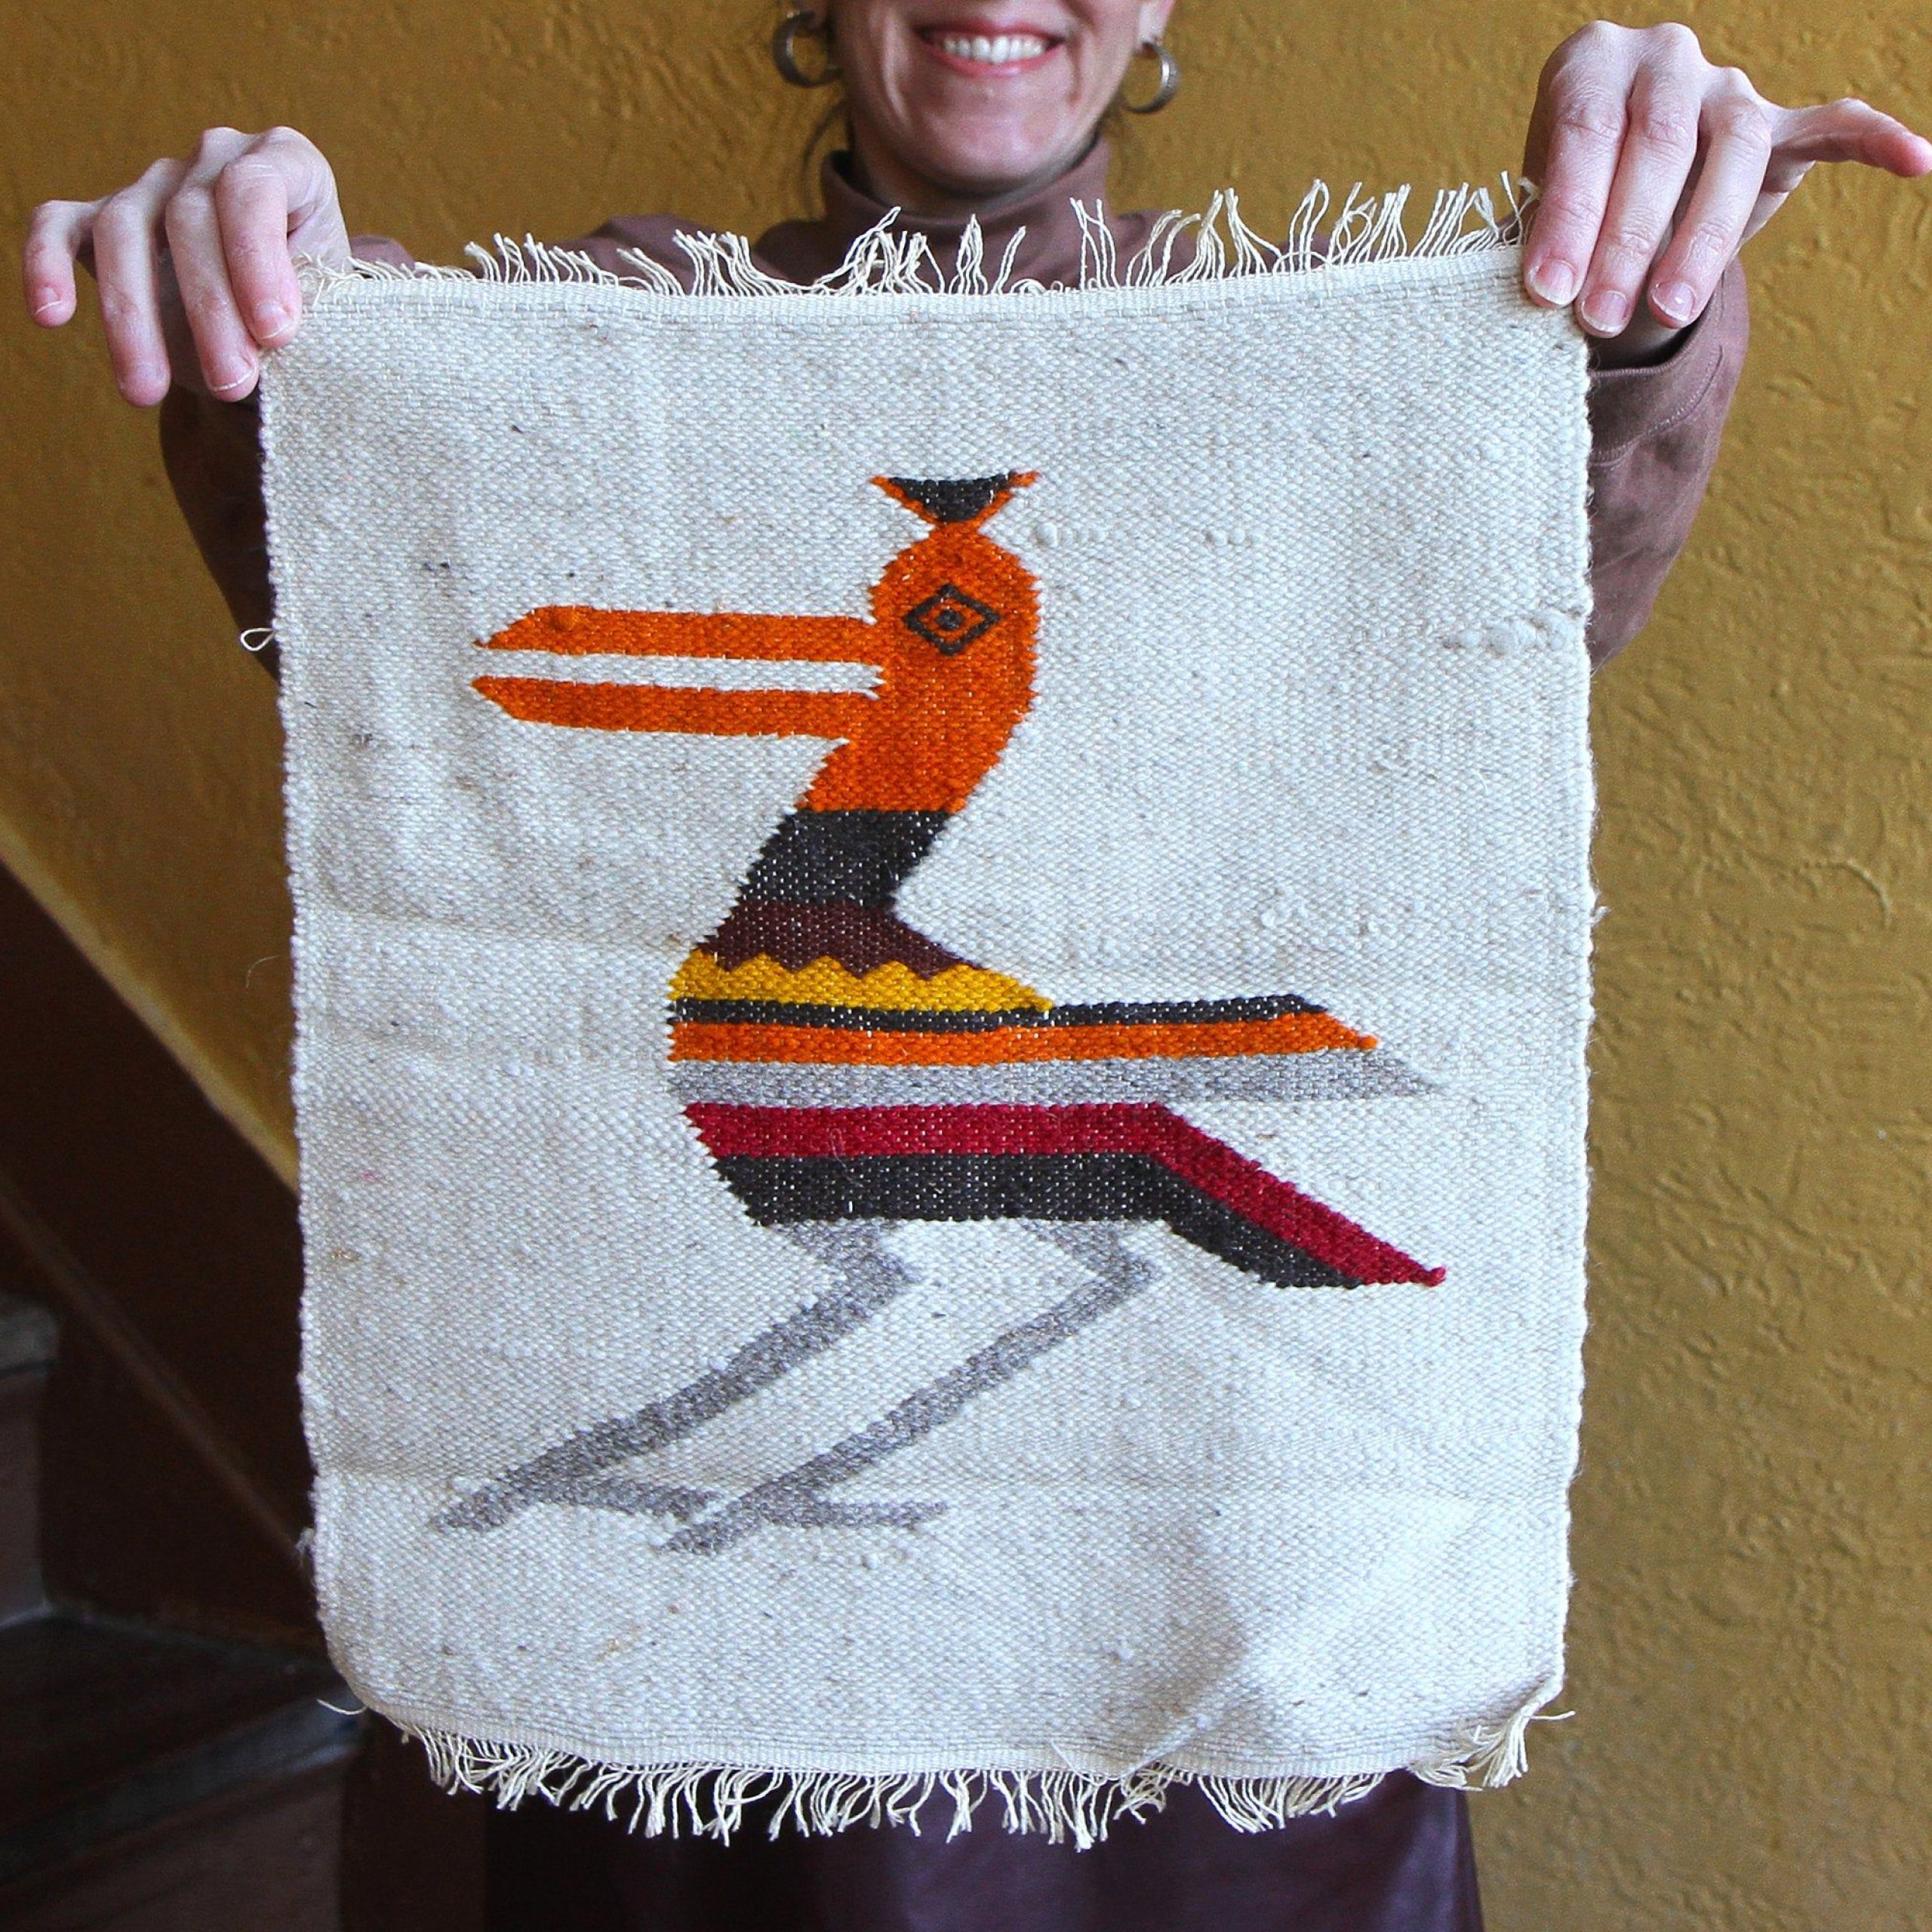 Pin On Etsy Group Board With Regard To Current Blended Fabric Southwestern Bohemian Wall Hangings (View 7 of 20)